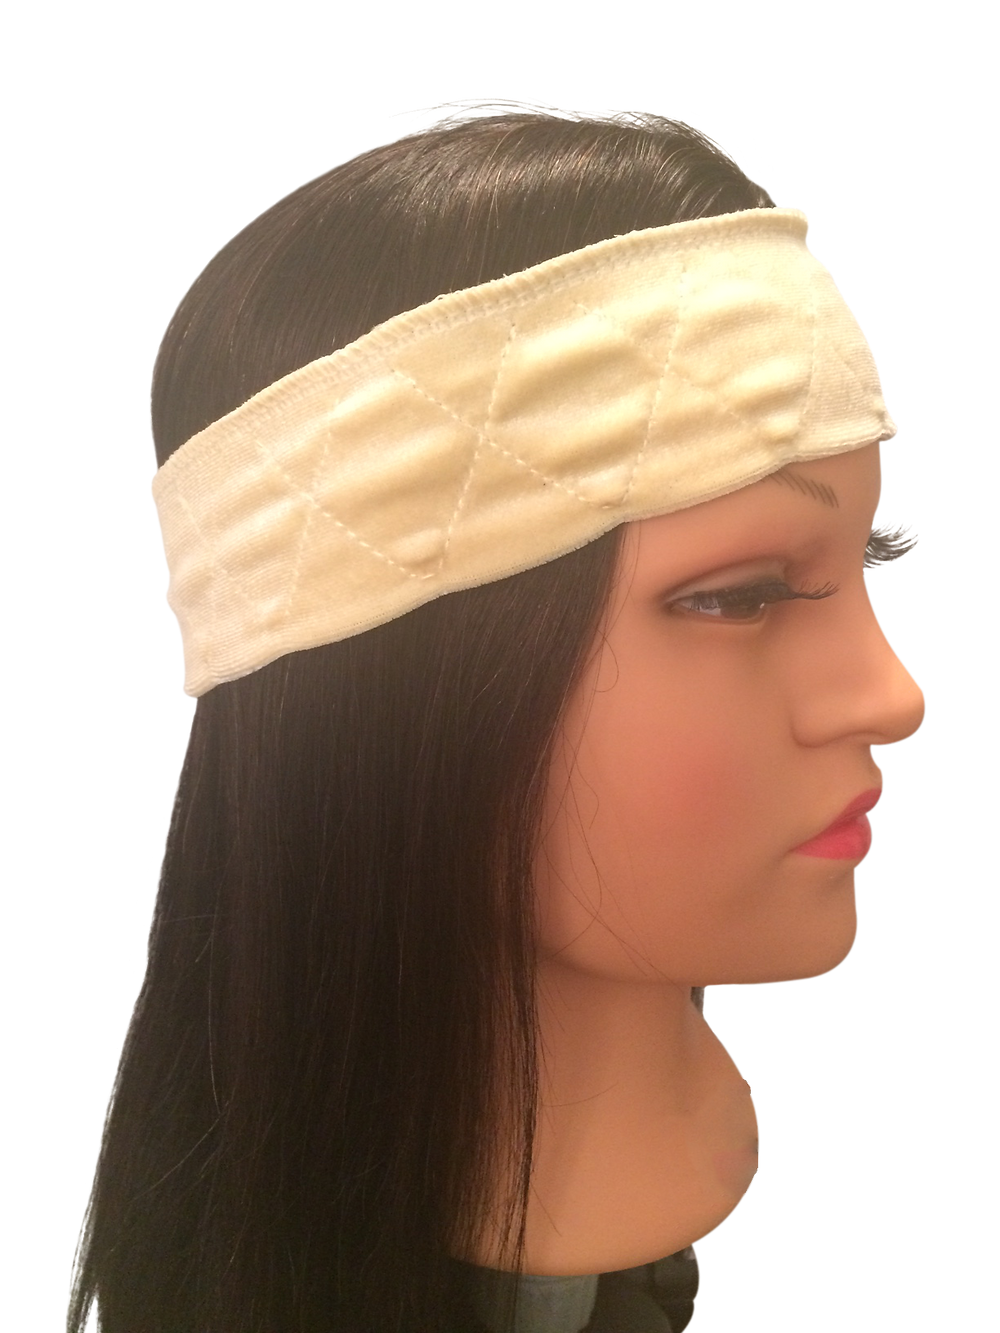 wig grip, headband, gripper, wigs, holder, wig attachment, hair extensions, wig stability, amid beauty, amidbeauty.com